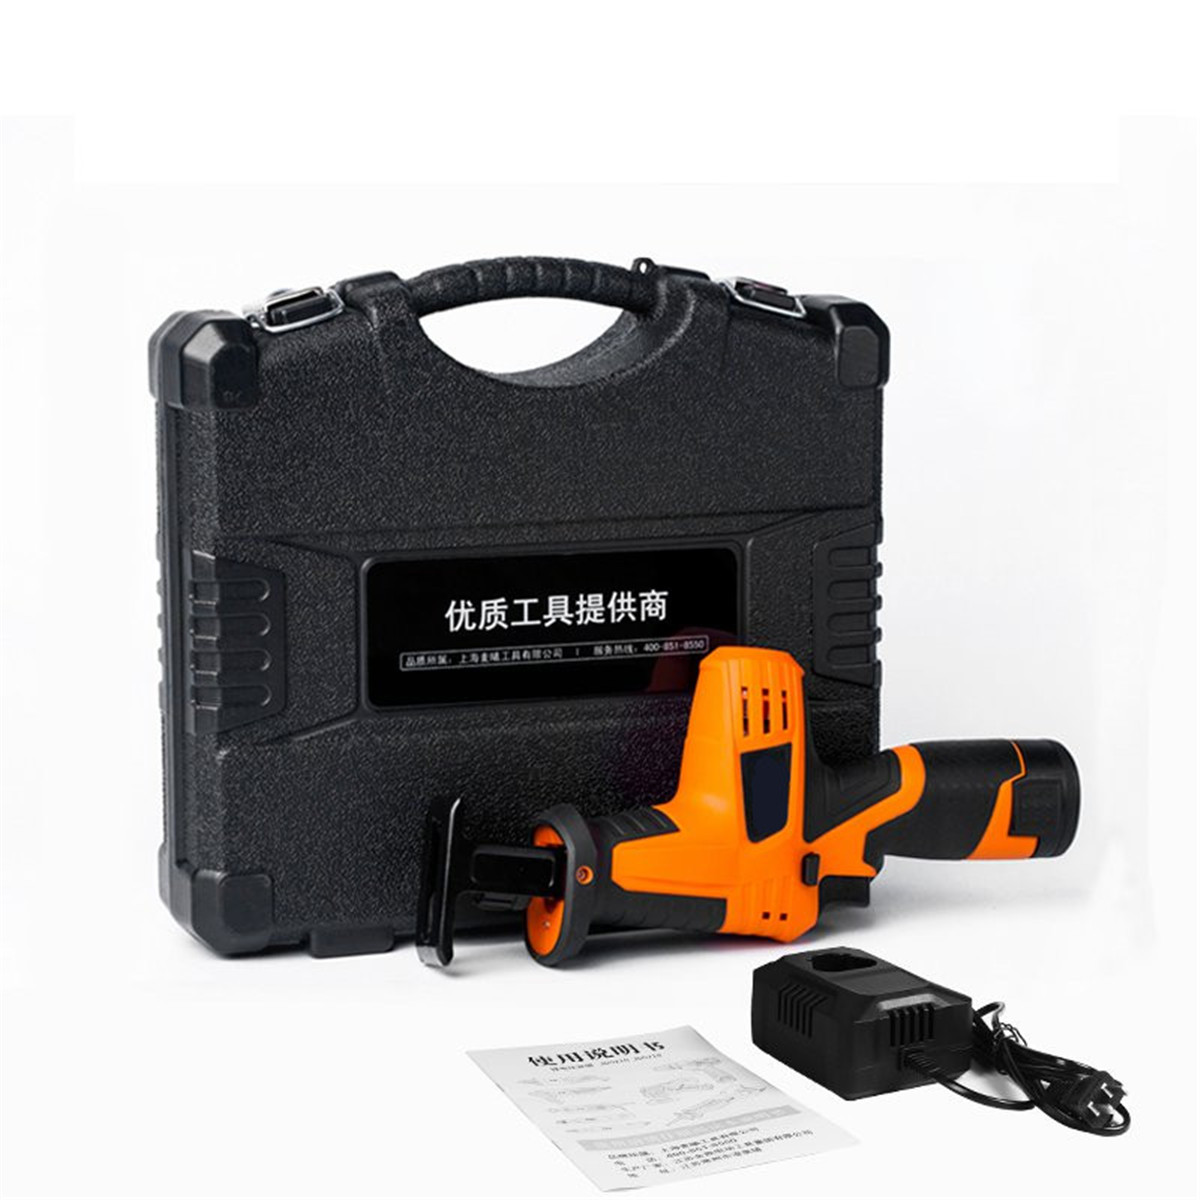 цена на 12V Portable Reciprocating Saw Powerful Wood Cutting Saw Electric Wood/ Metal Saws With Blade Woodworking Cutter